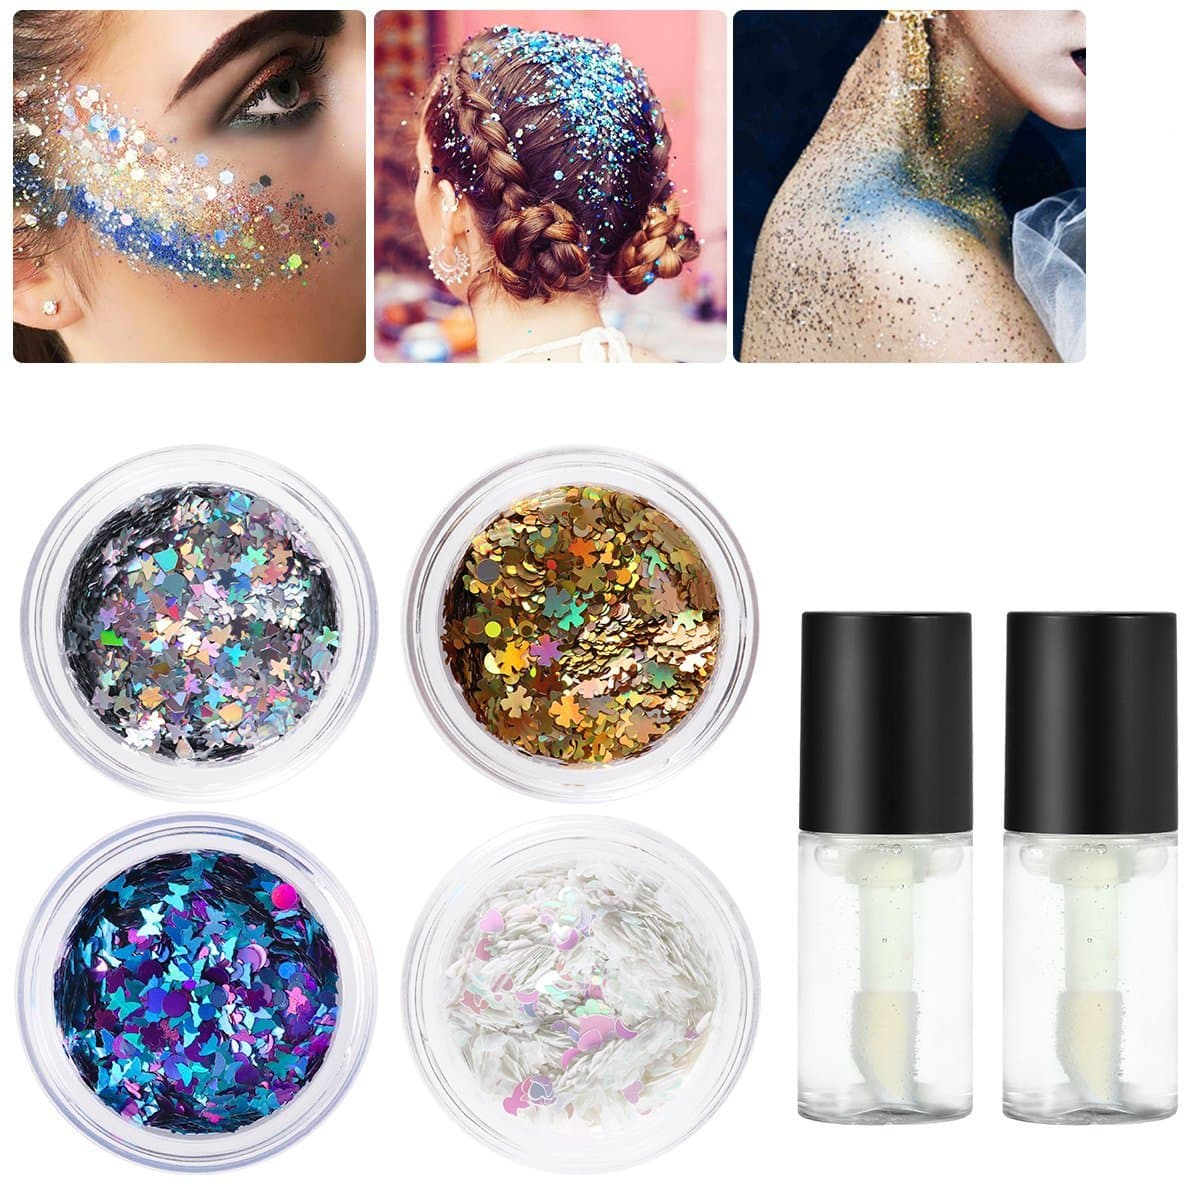 PIXNOR Body Glitter 4 Colors Holographic Chunky Glitter with 2pcs Long Lasting Fix Gel for Face, Body, Hair and Nail $9.59